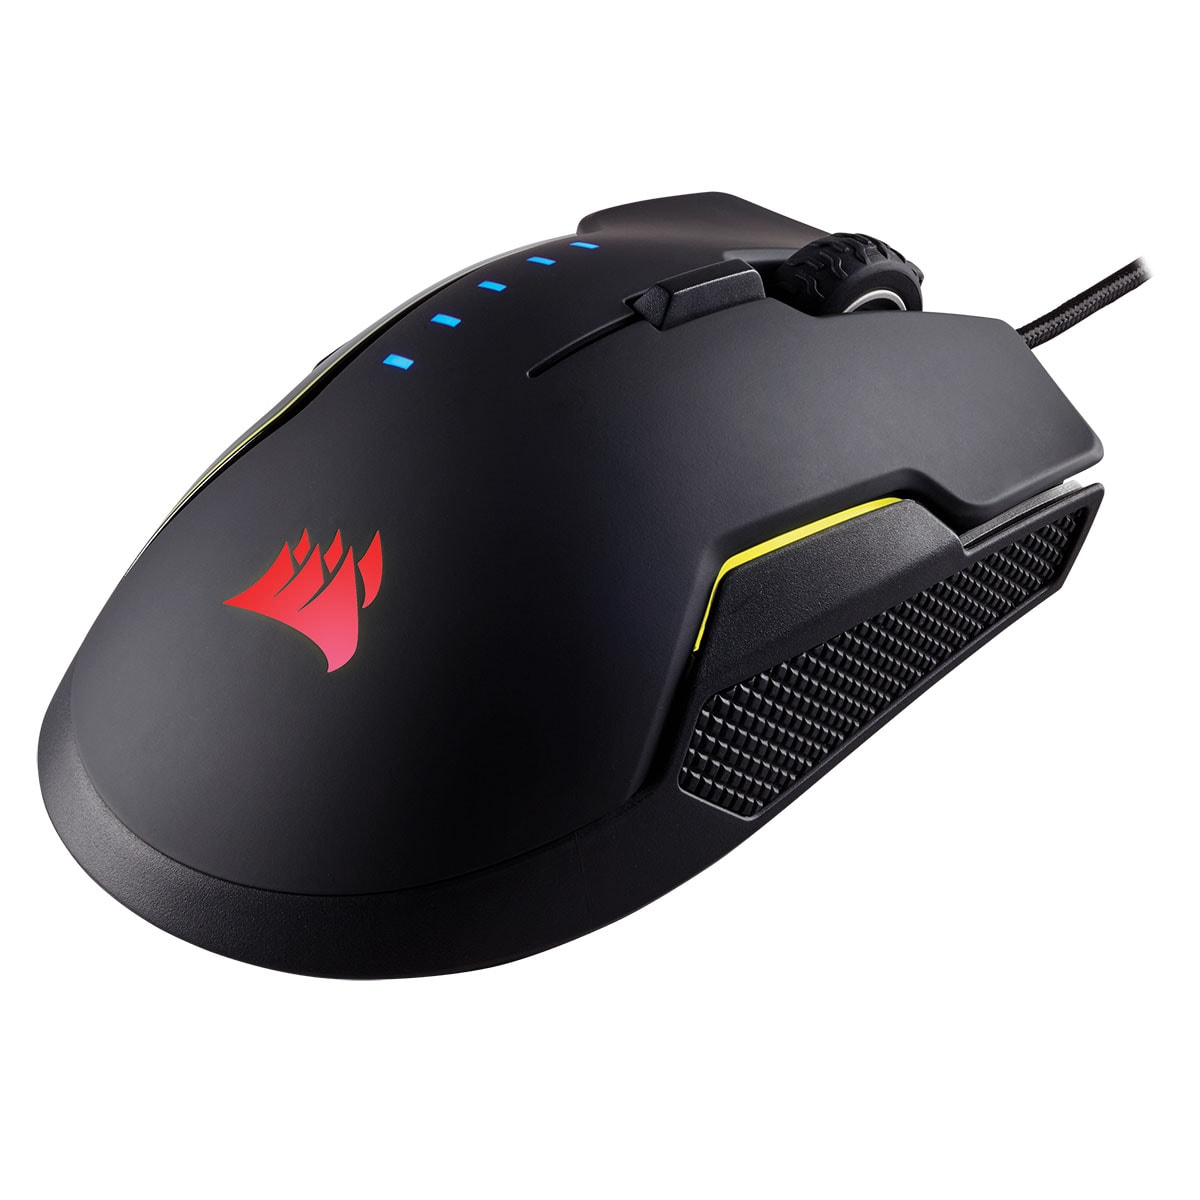 Corsair Glaive RGB Gaming Mouse Black - Souris PC Corsair - 3